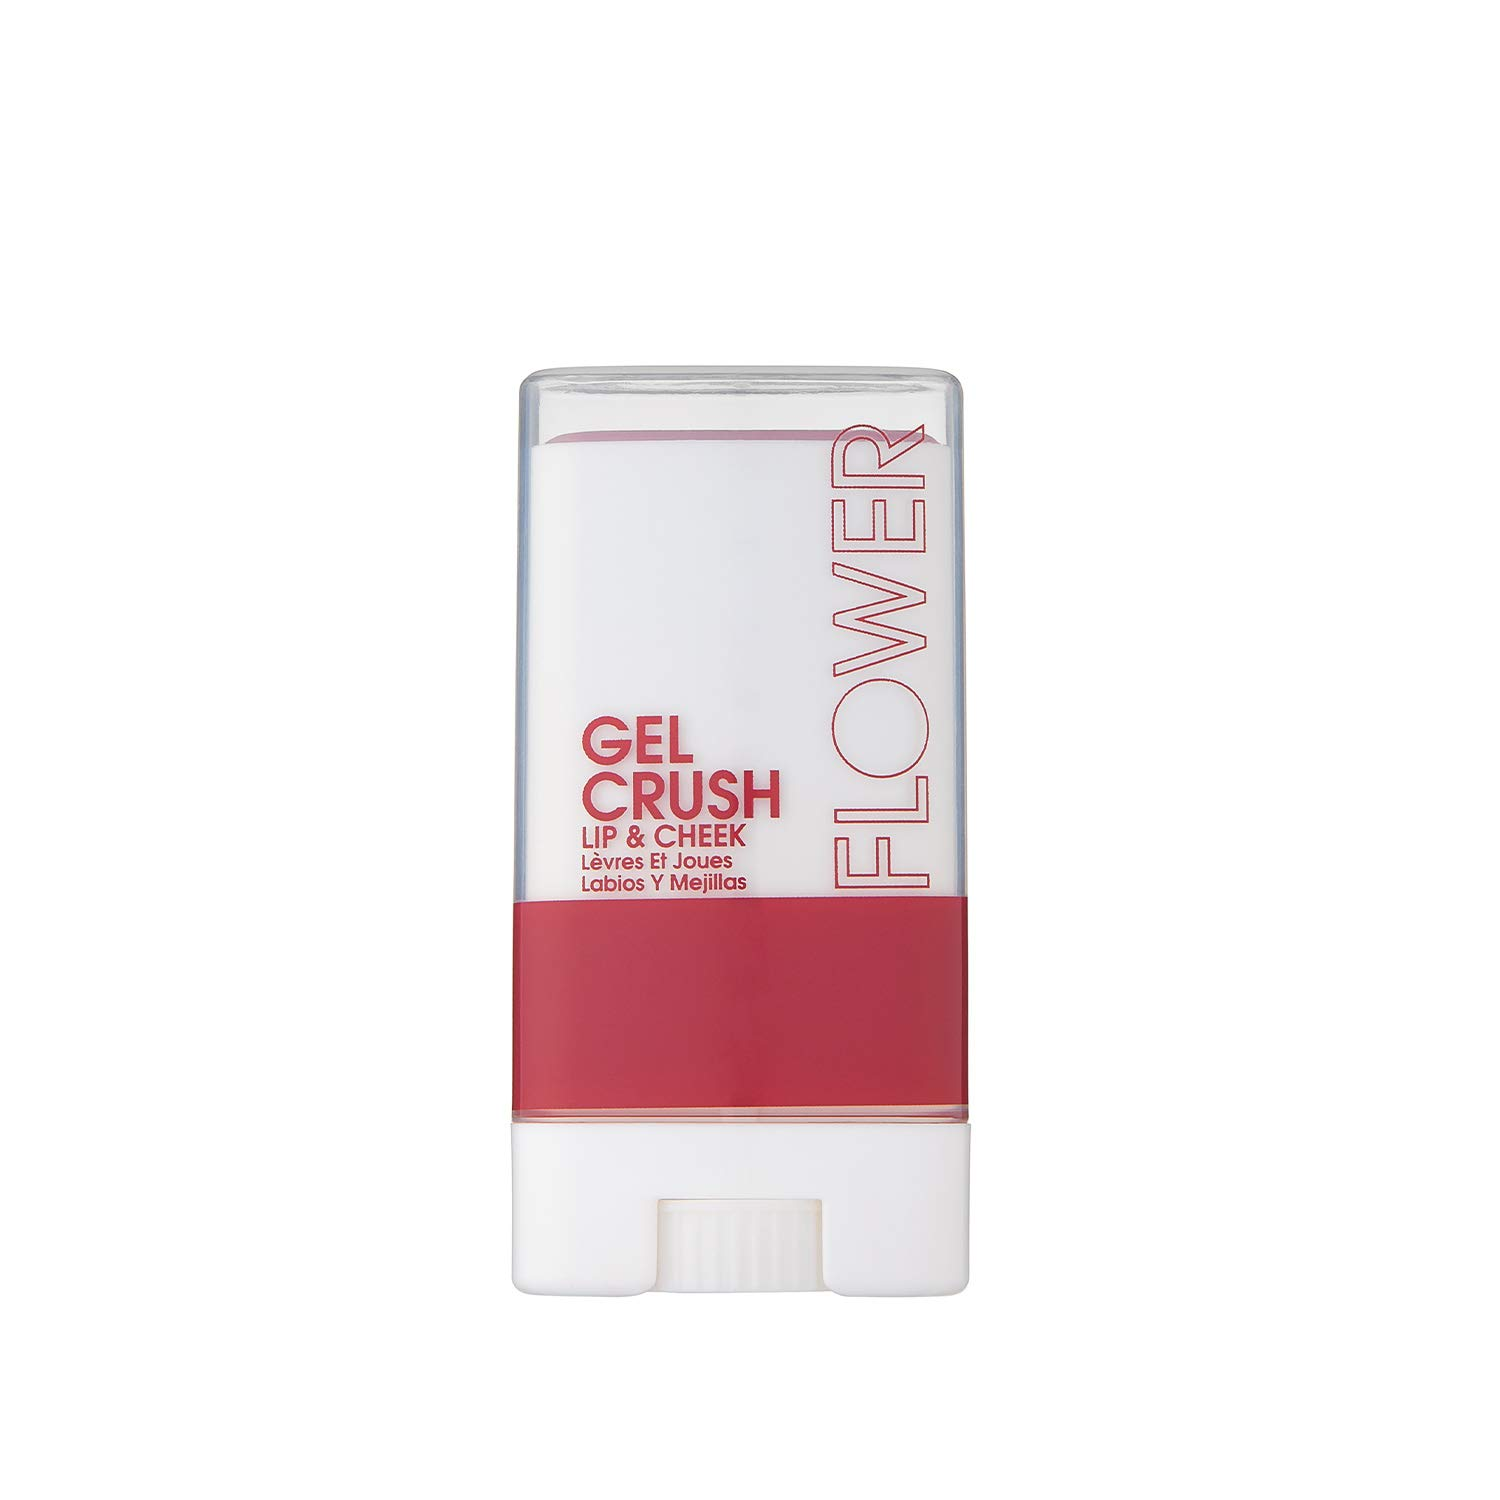 Flower Beauty Lip & Cheek Gel Crush | Cream Blush and Lips Tint in One Portable Multistick | Hydrating Burst of Color | (Blackberry)